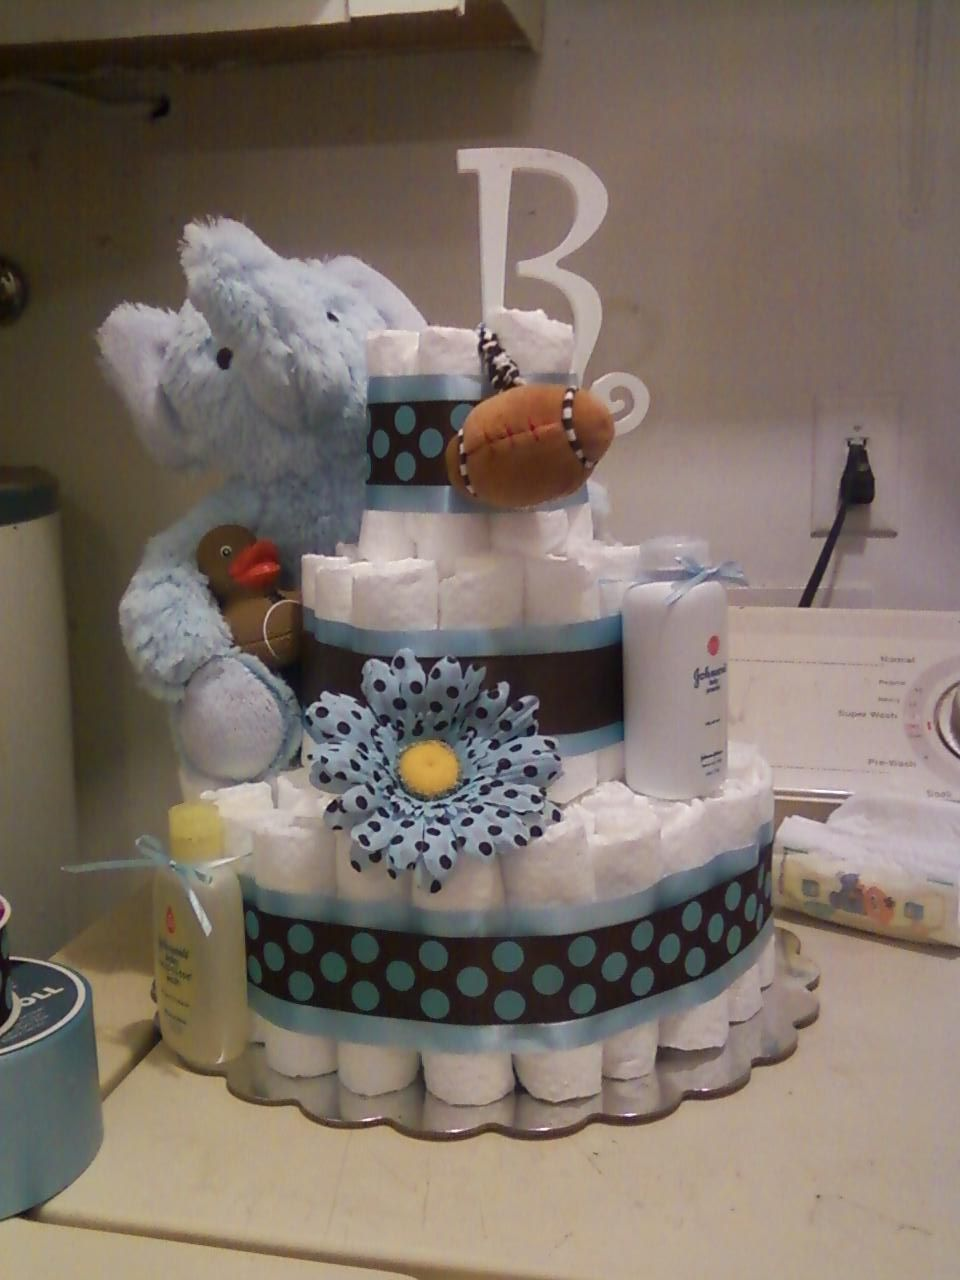 My sister in law did a fabulous job with this diaper cake